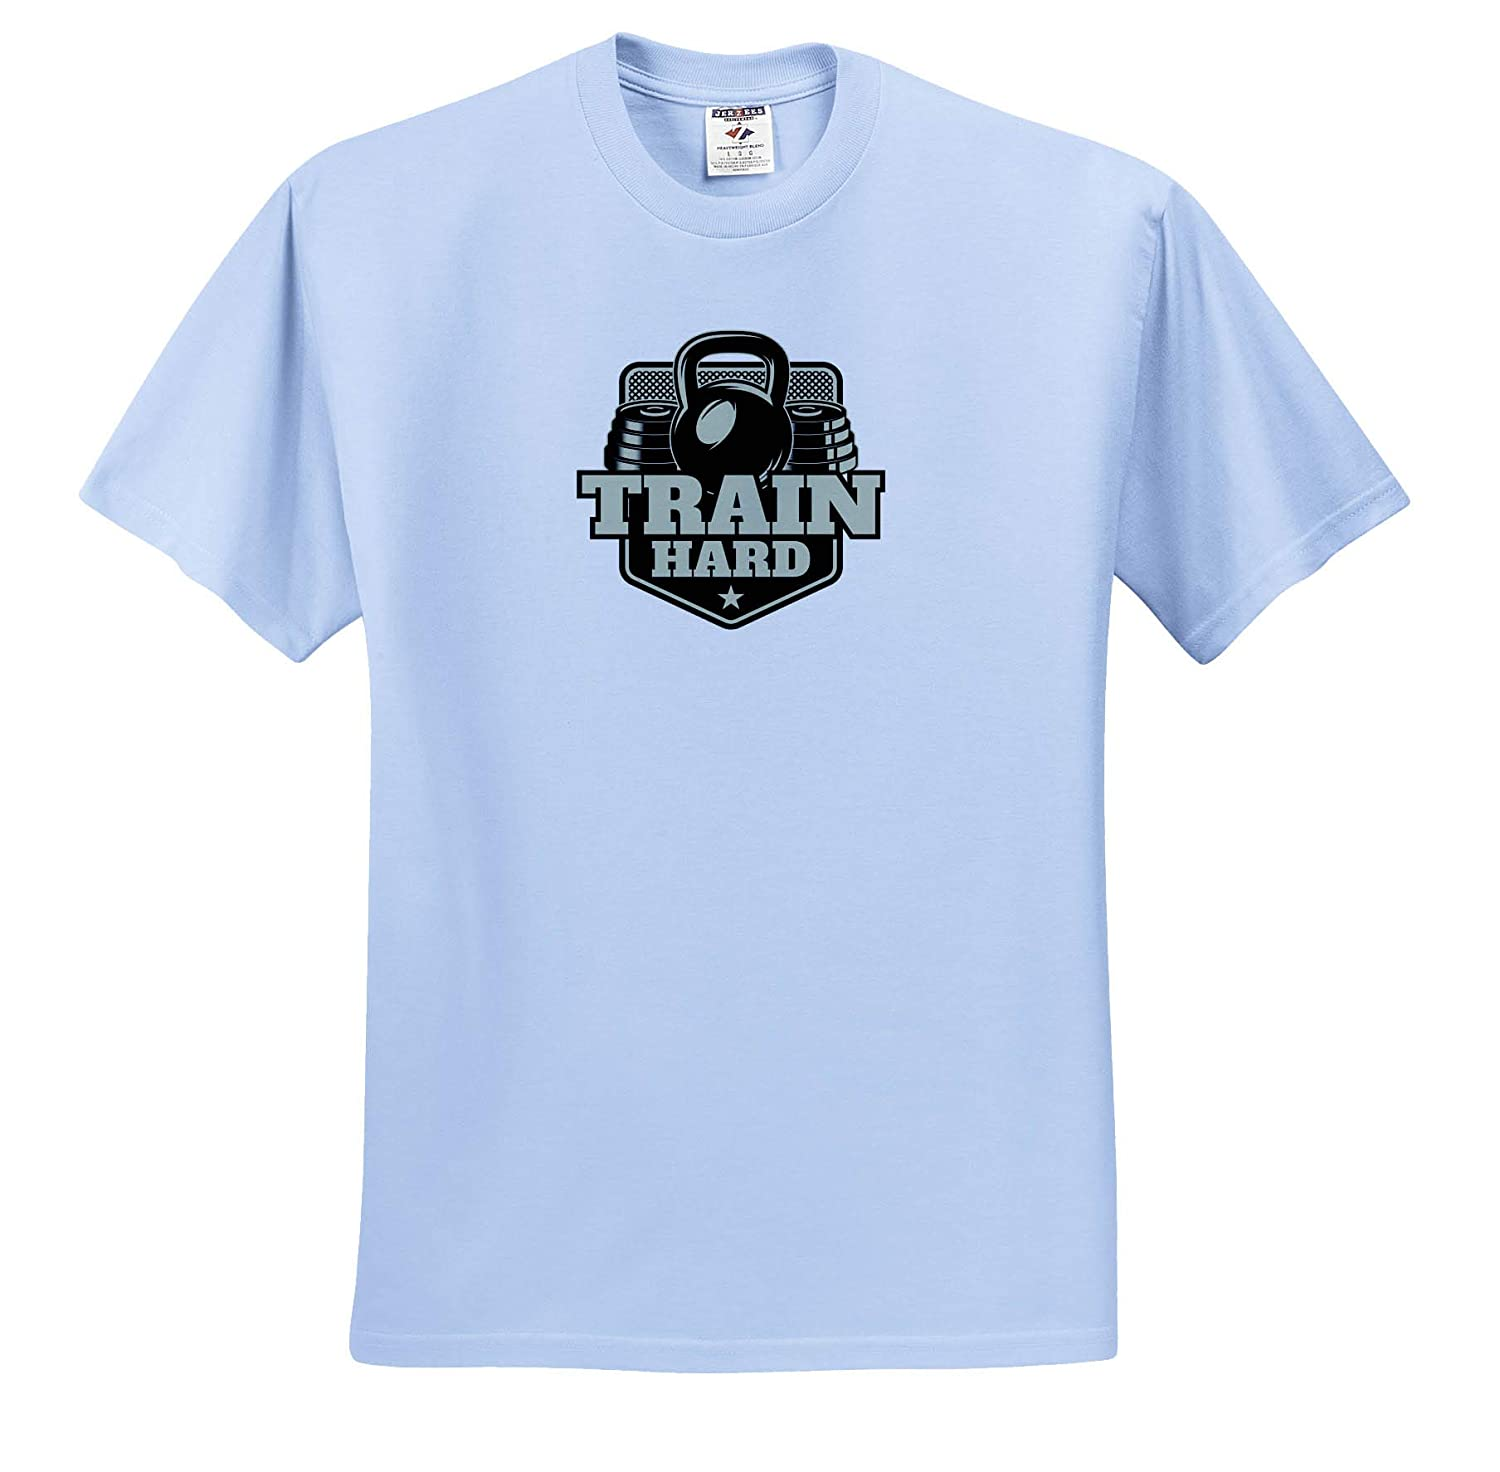 The Text Train Hard on White T-Shirts 3dRose Alexis Design Image of a Dumbbell and Weights Sport Fitness